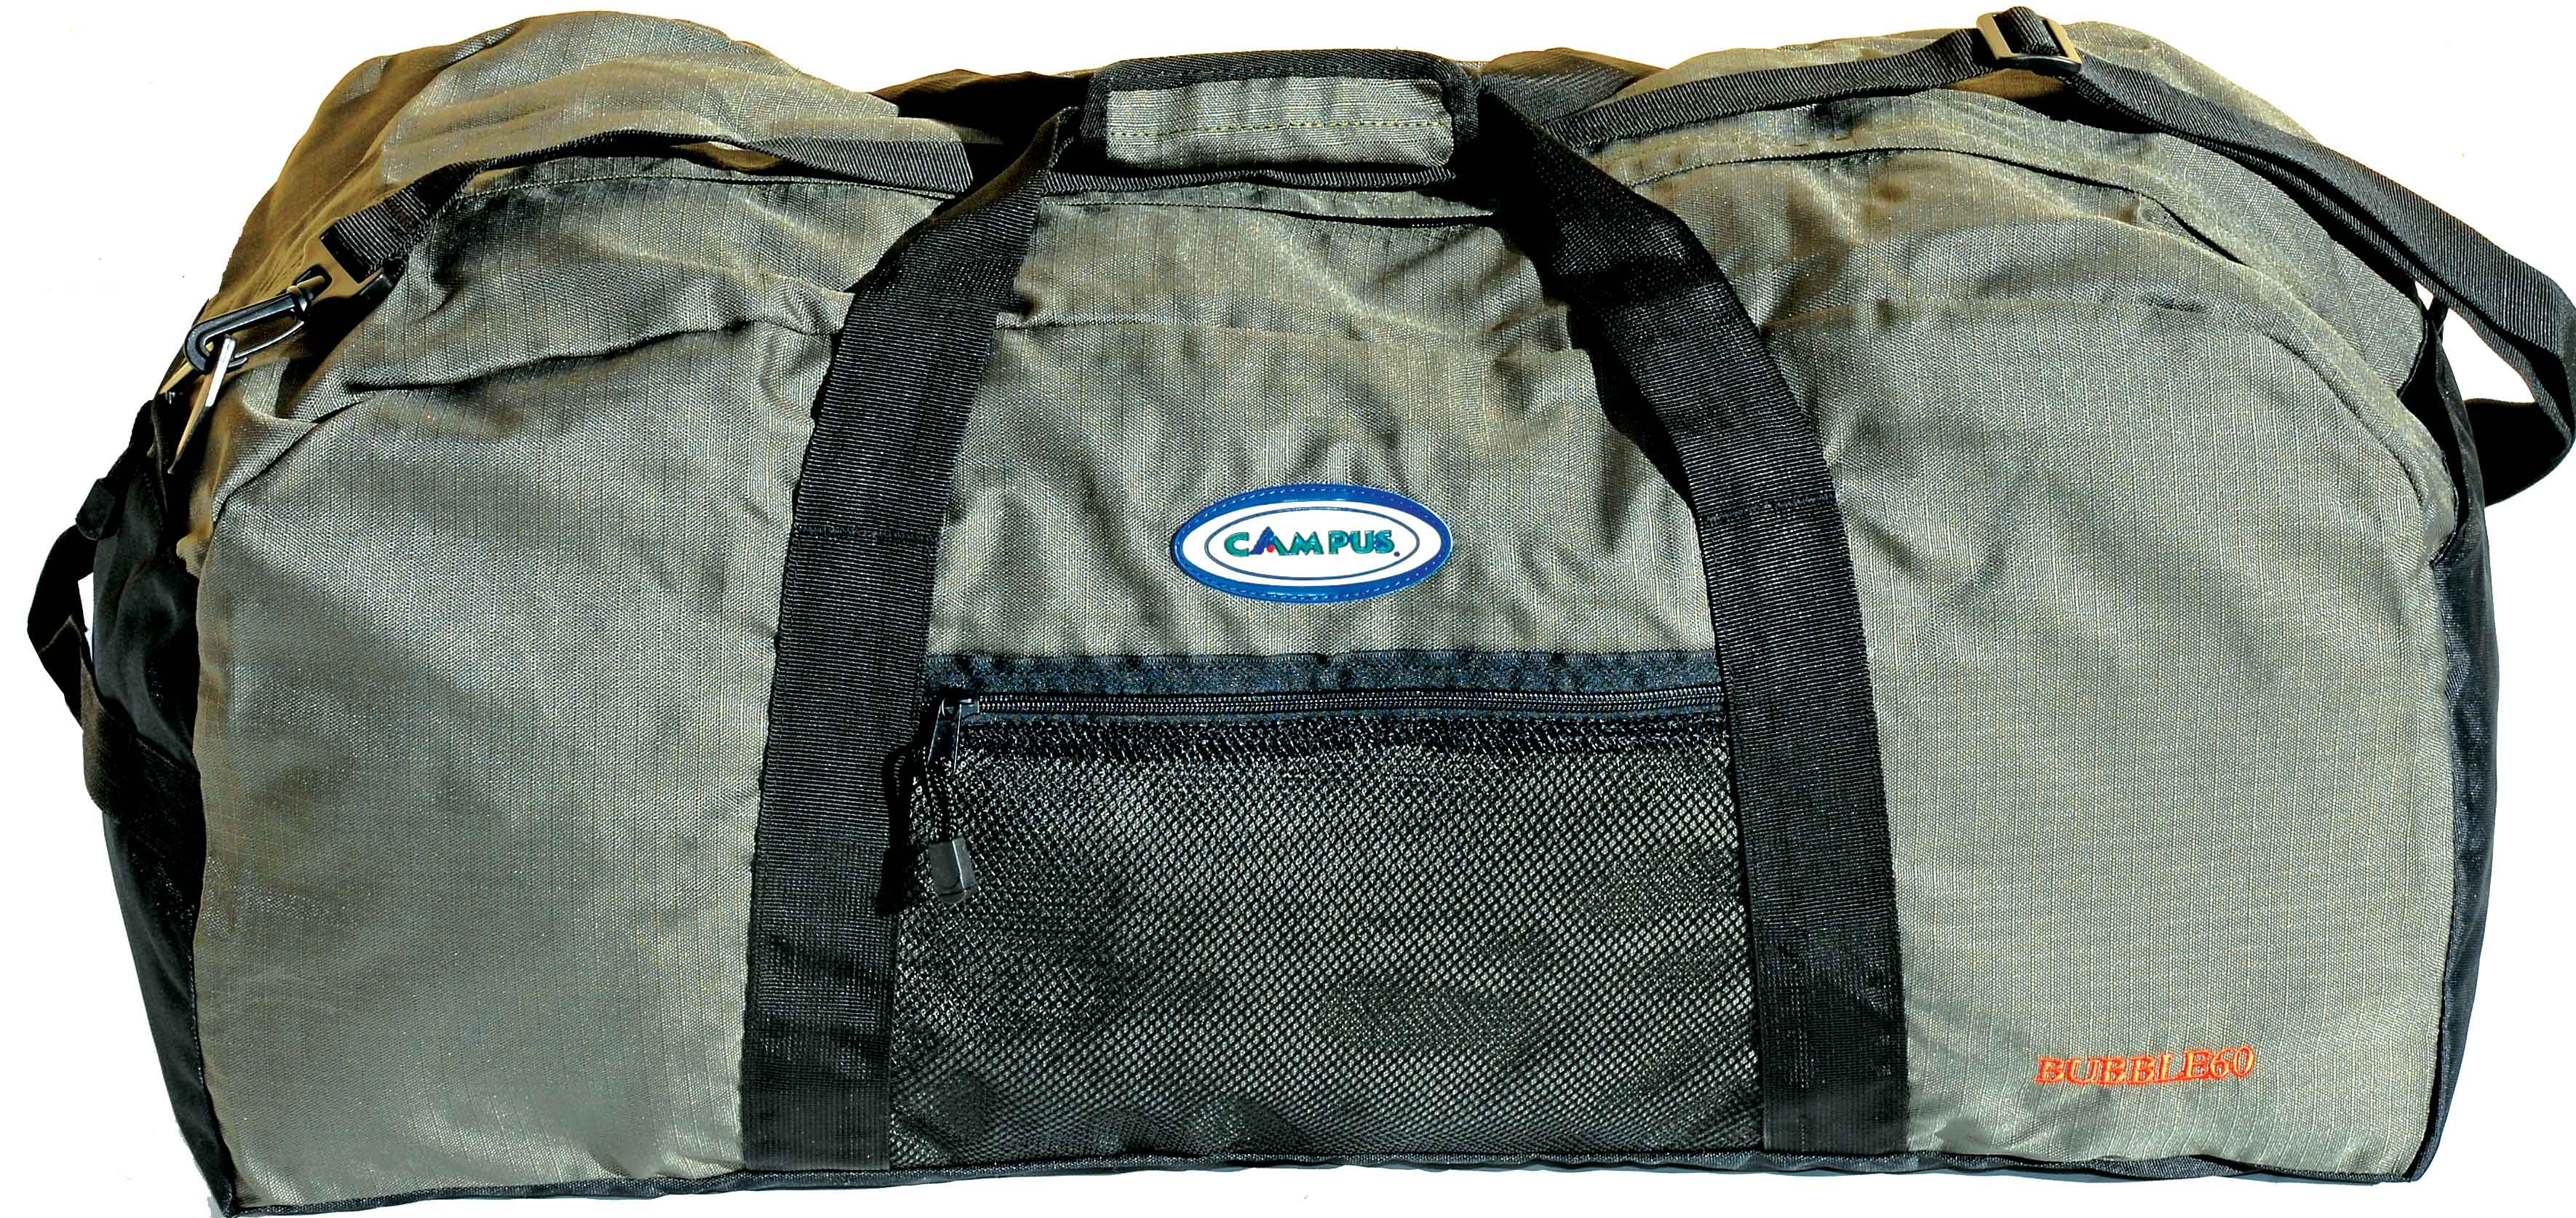 Lit Fabric Travel Bag Bubble 60 Lit Army Green Fabric Polyester 600d B